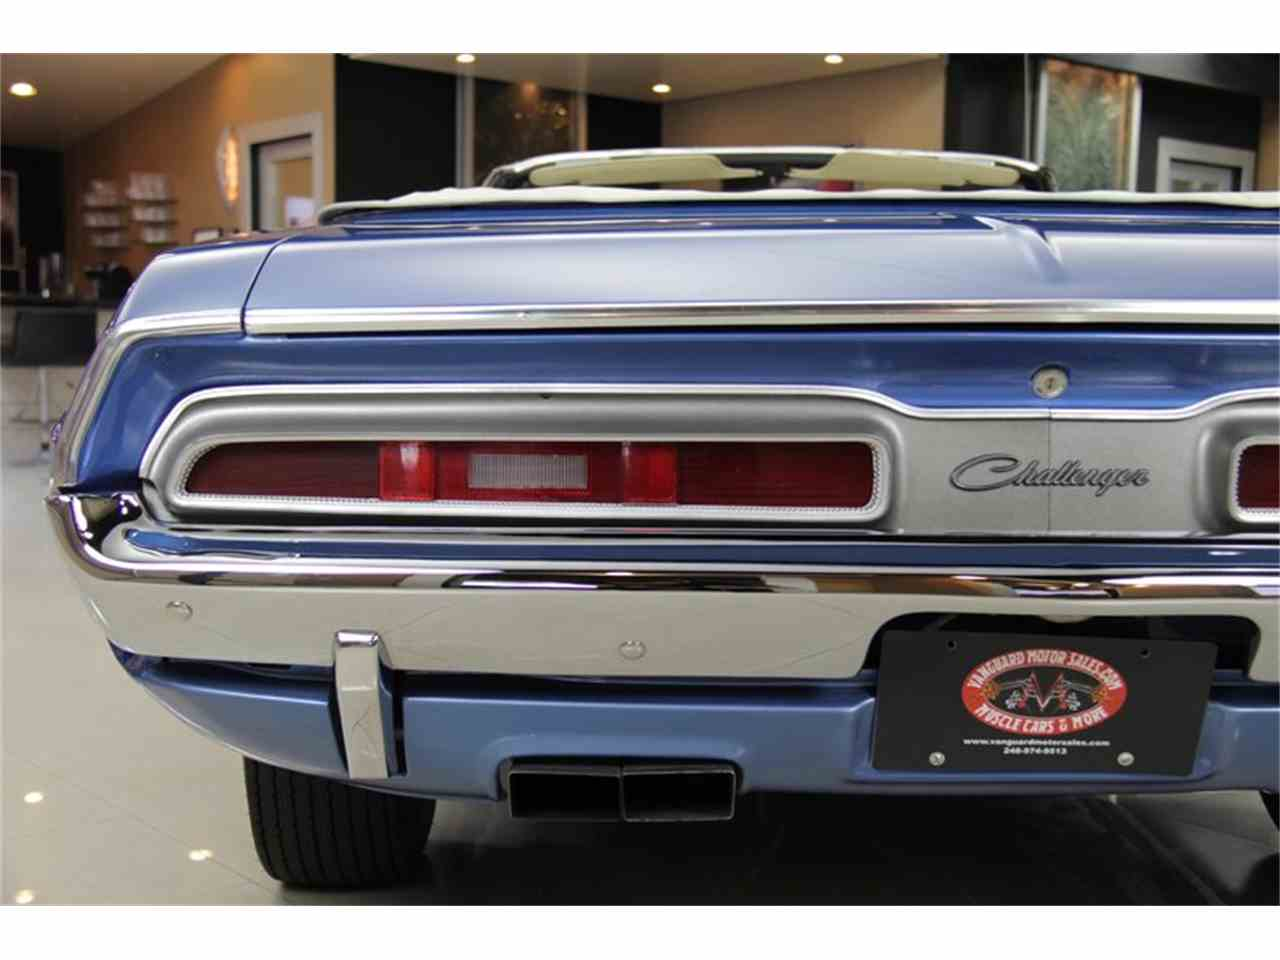 Dodge challenger for sale near me pics drivins for Windows for sale near me